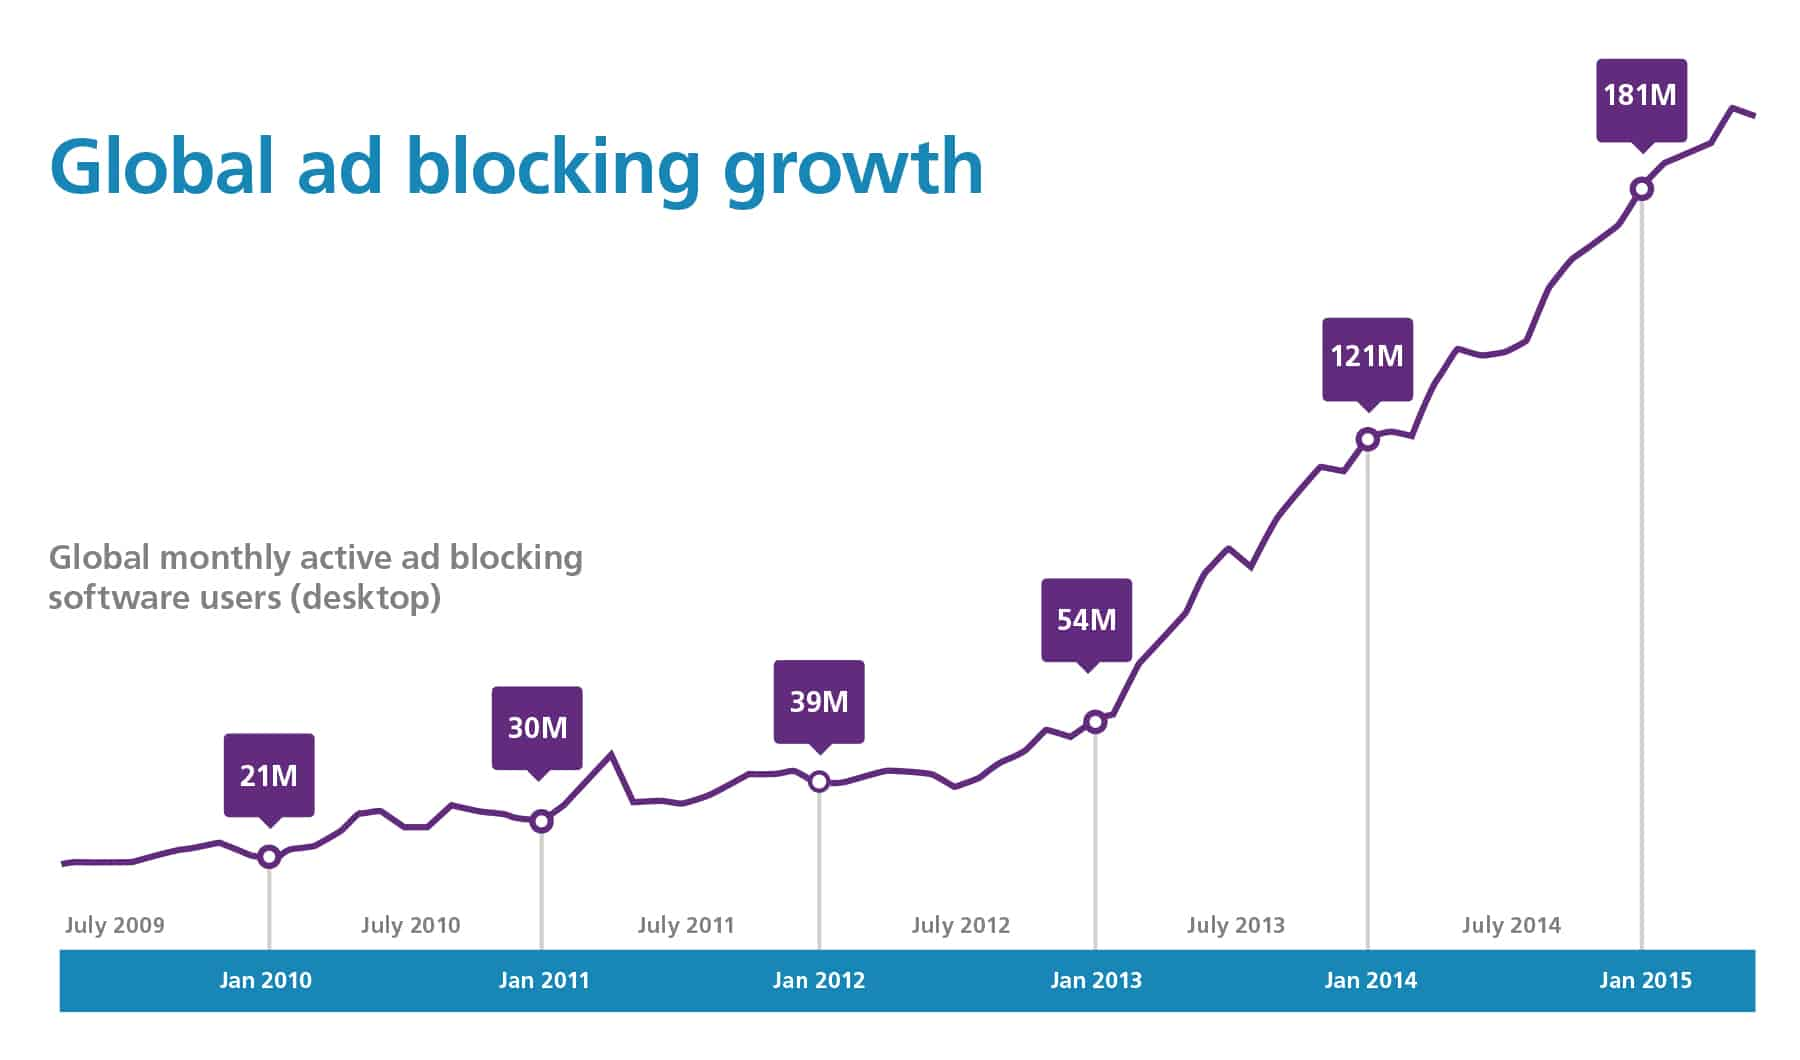 Ad blocking growth